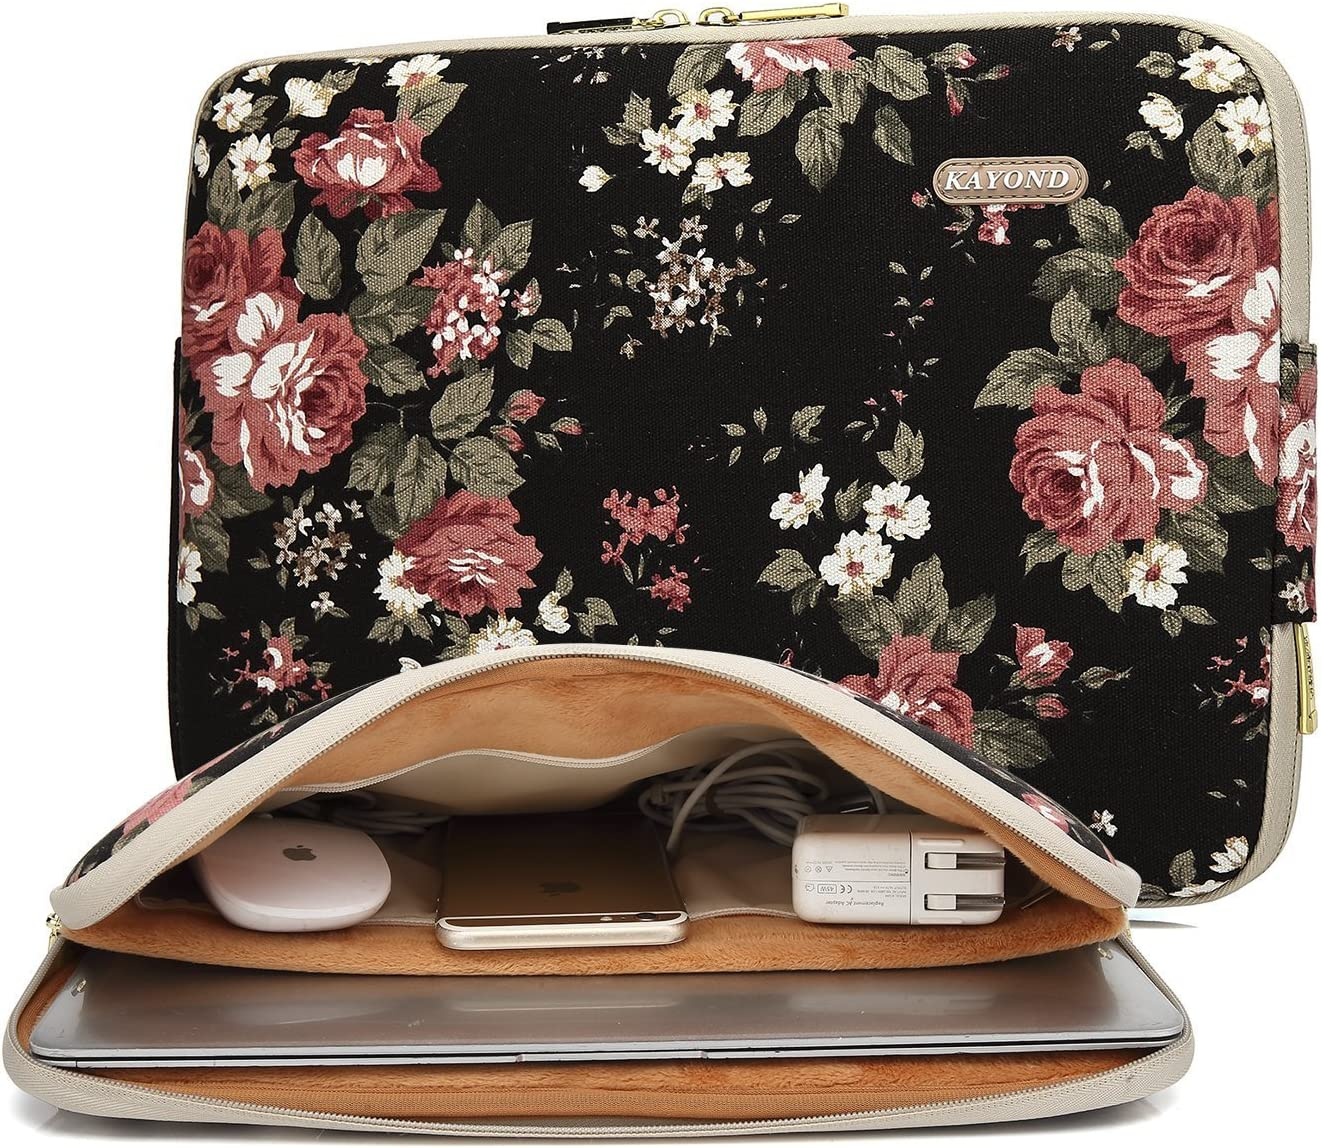 kayond Water-Resistant Canvas 15.6 Inch Laptop Sleeve-Black C Rose